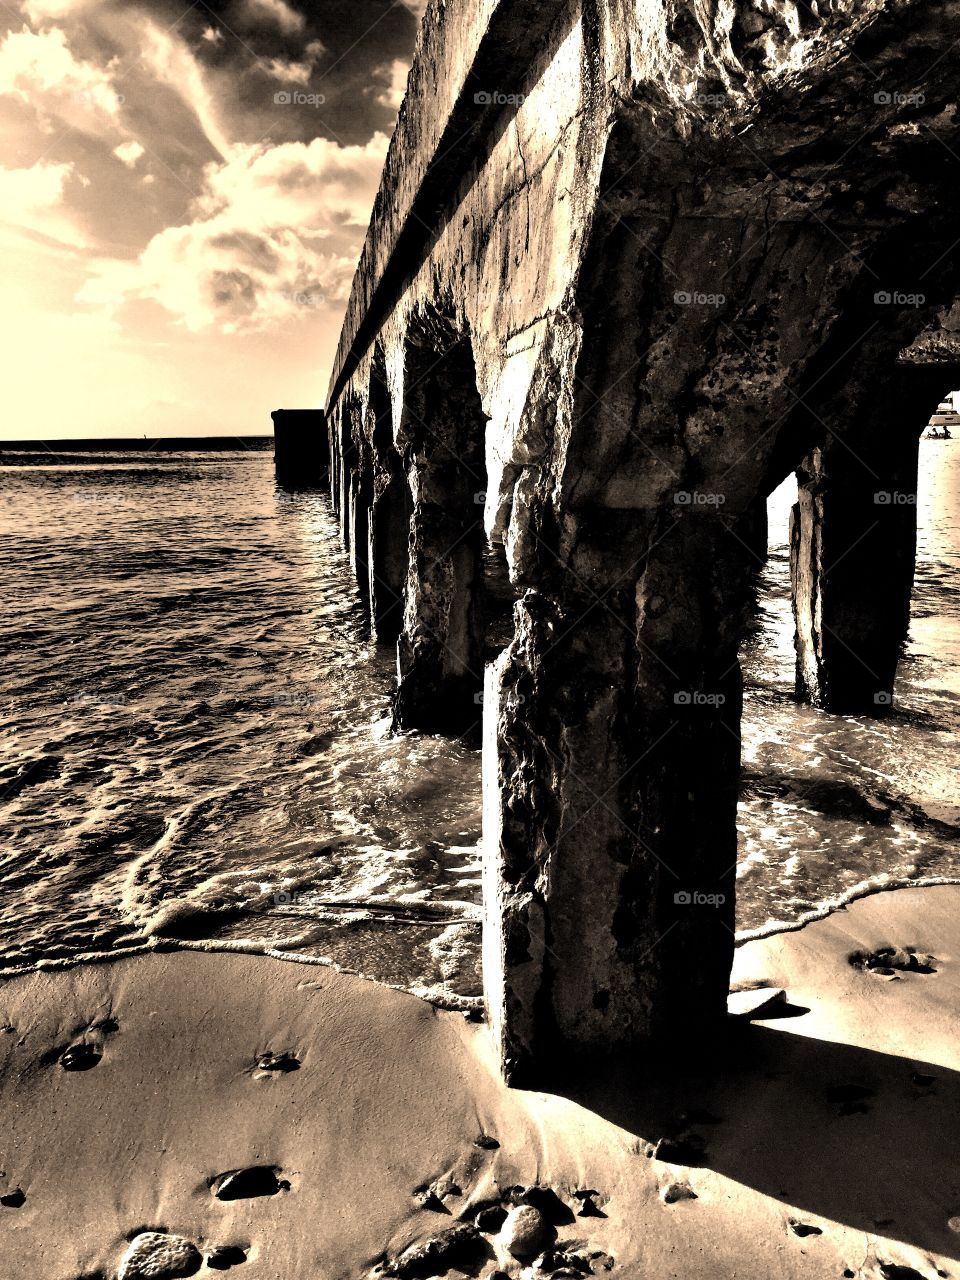 Show Us Your Best Photos, Monochromatic Pier On The Ocean, Waves Crashing Into Pier, Dramatic Landscape